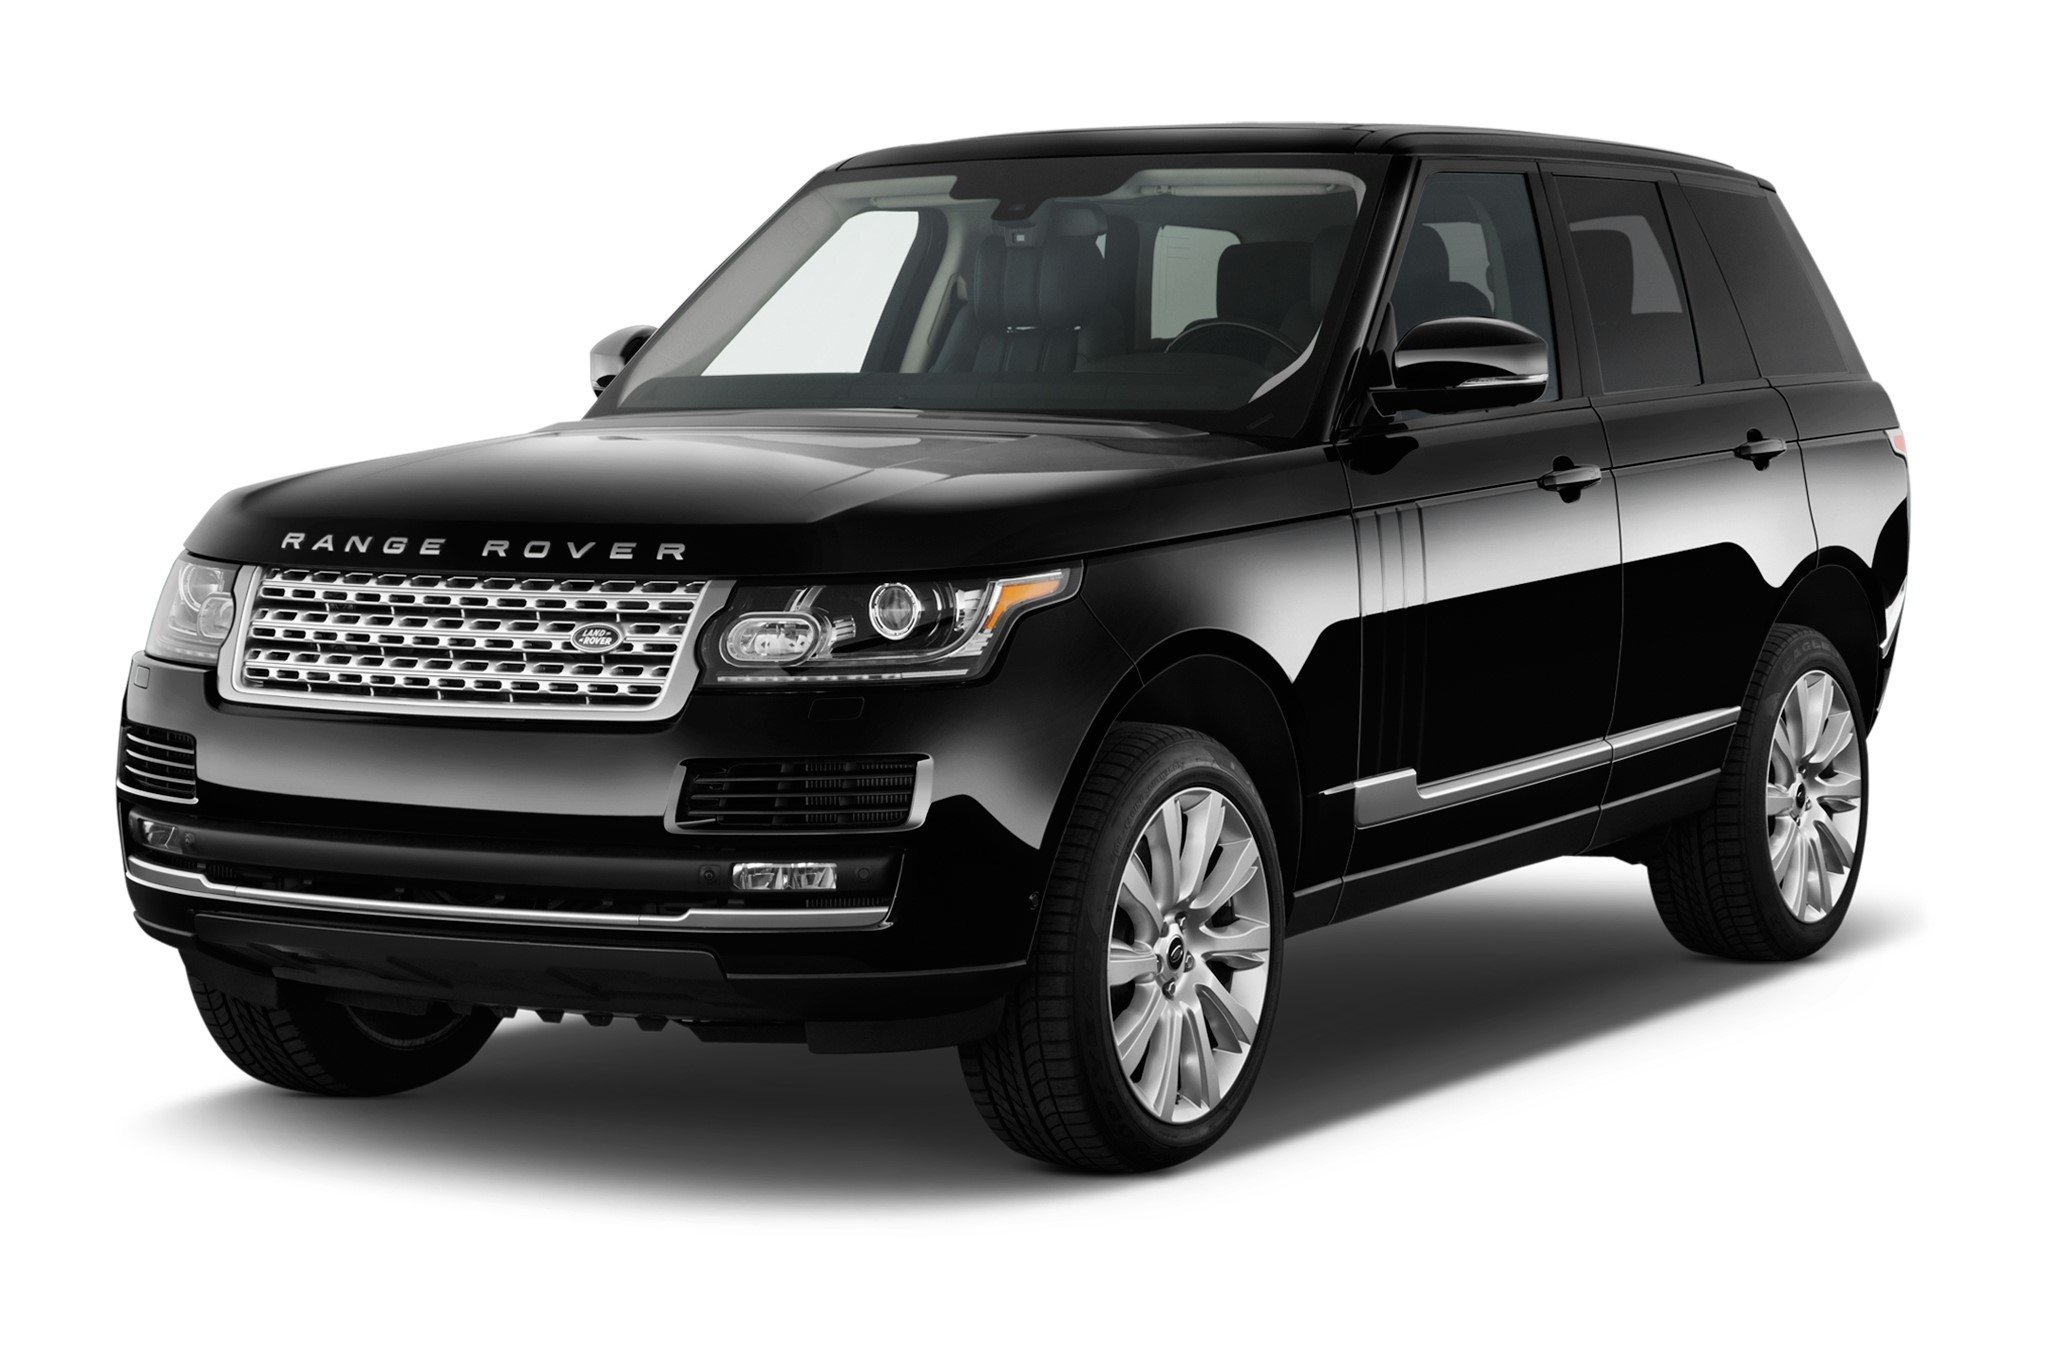 Range Rover images